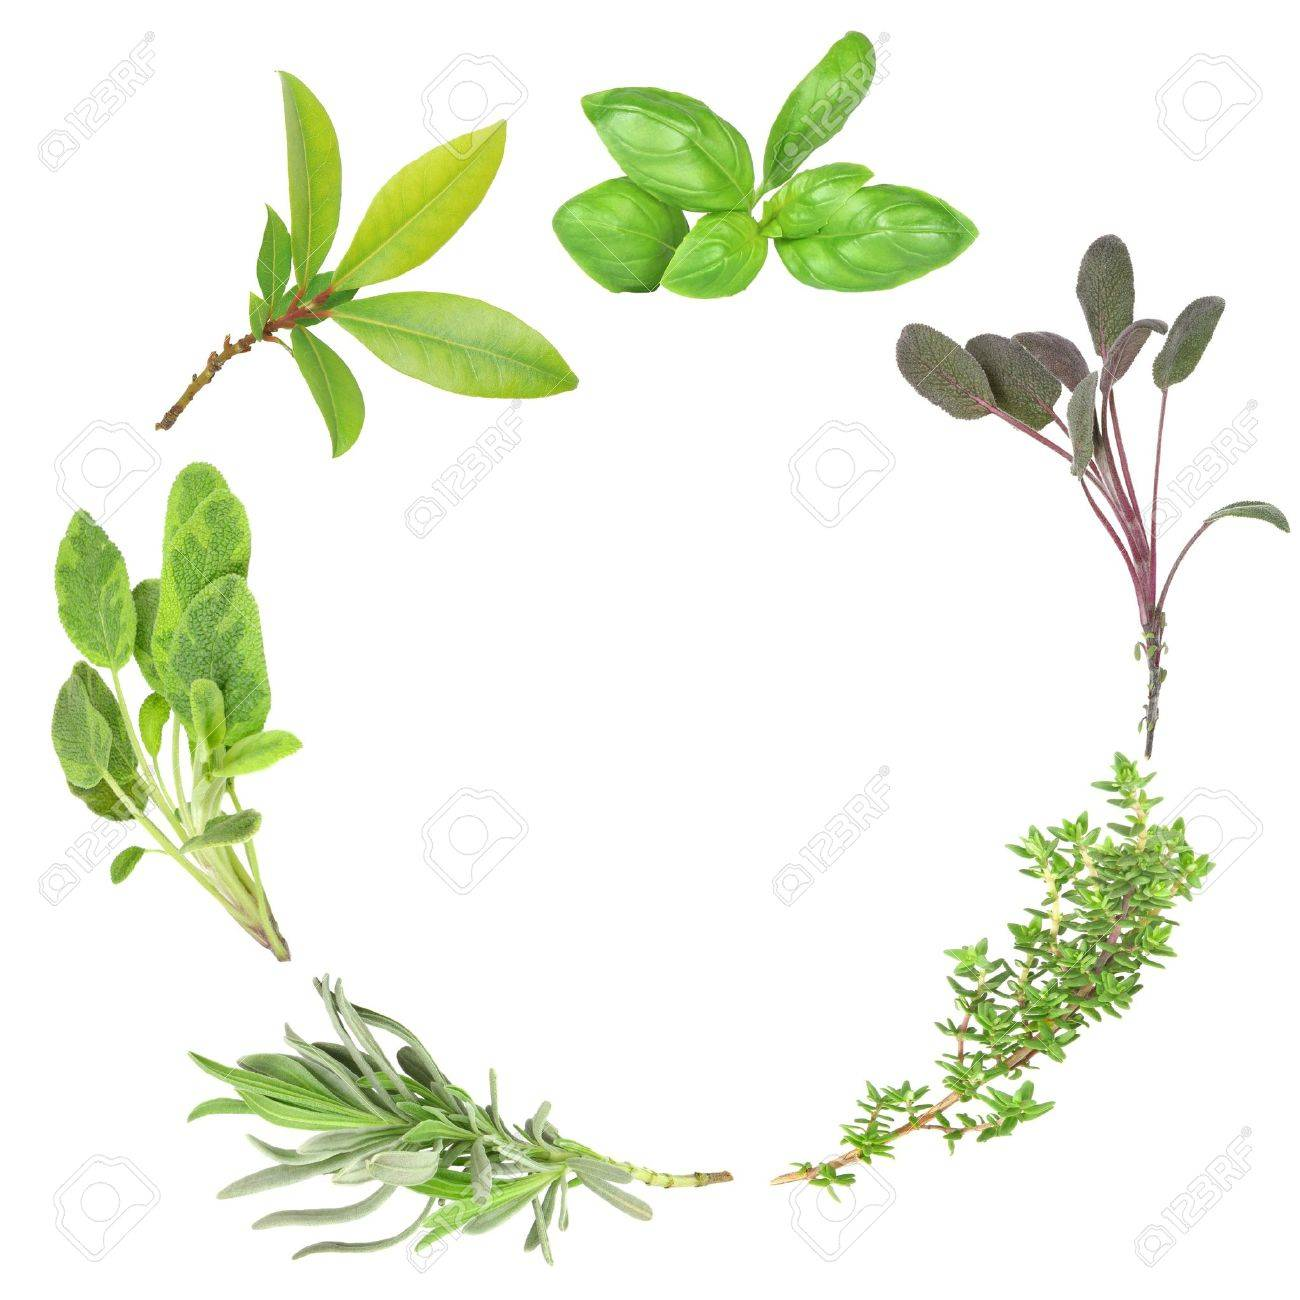 Organic herb garland of basil, purple sage, common thyme, lavender, variegated sage, and bay set against a white background. (Clockwise order) Stock Photo - 3179525